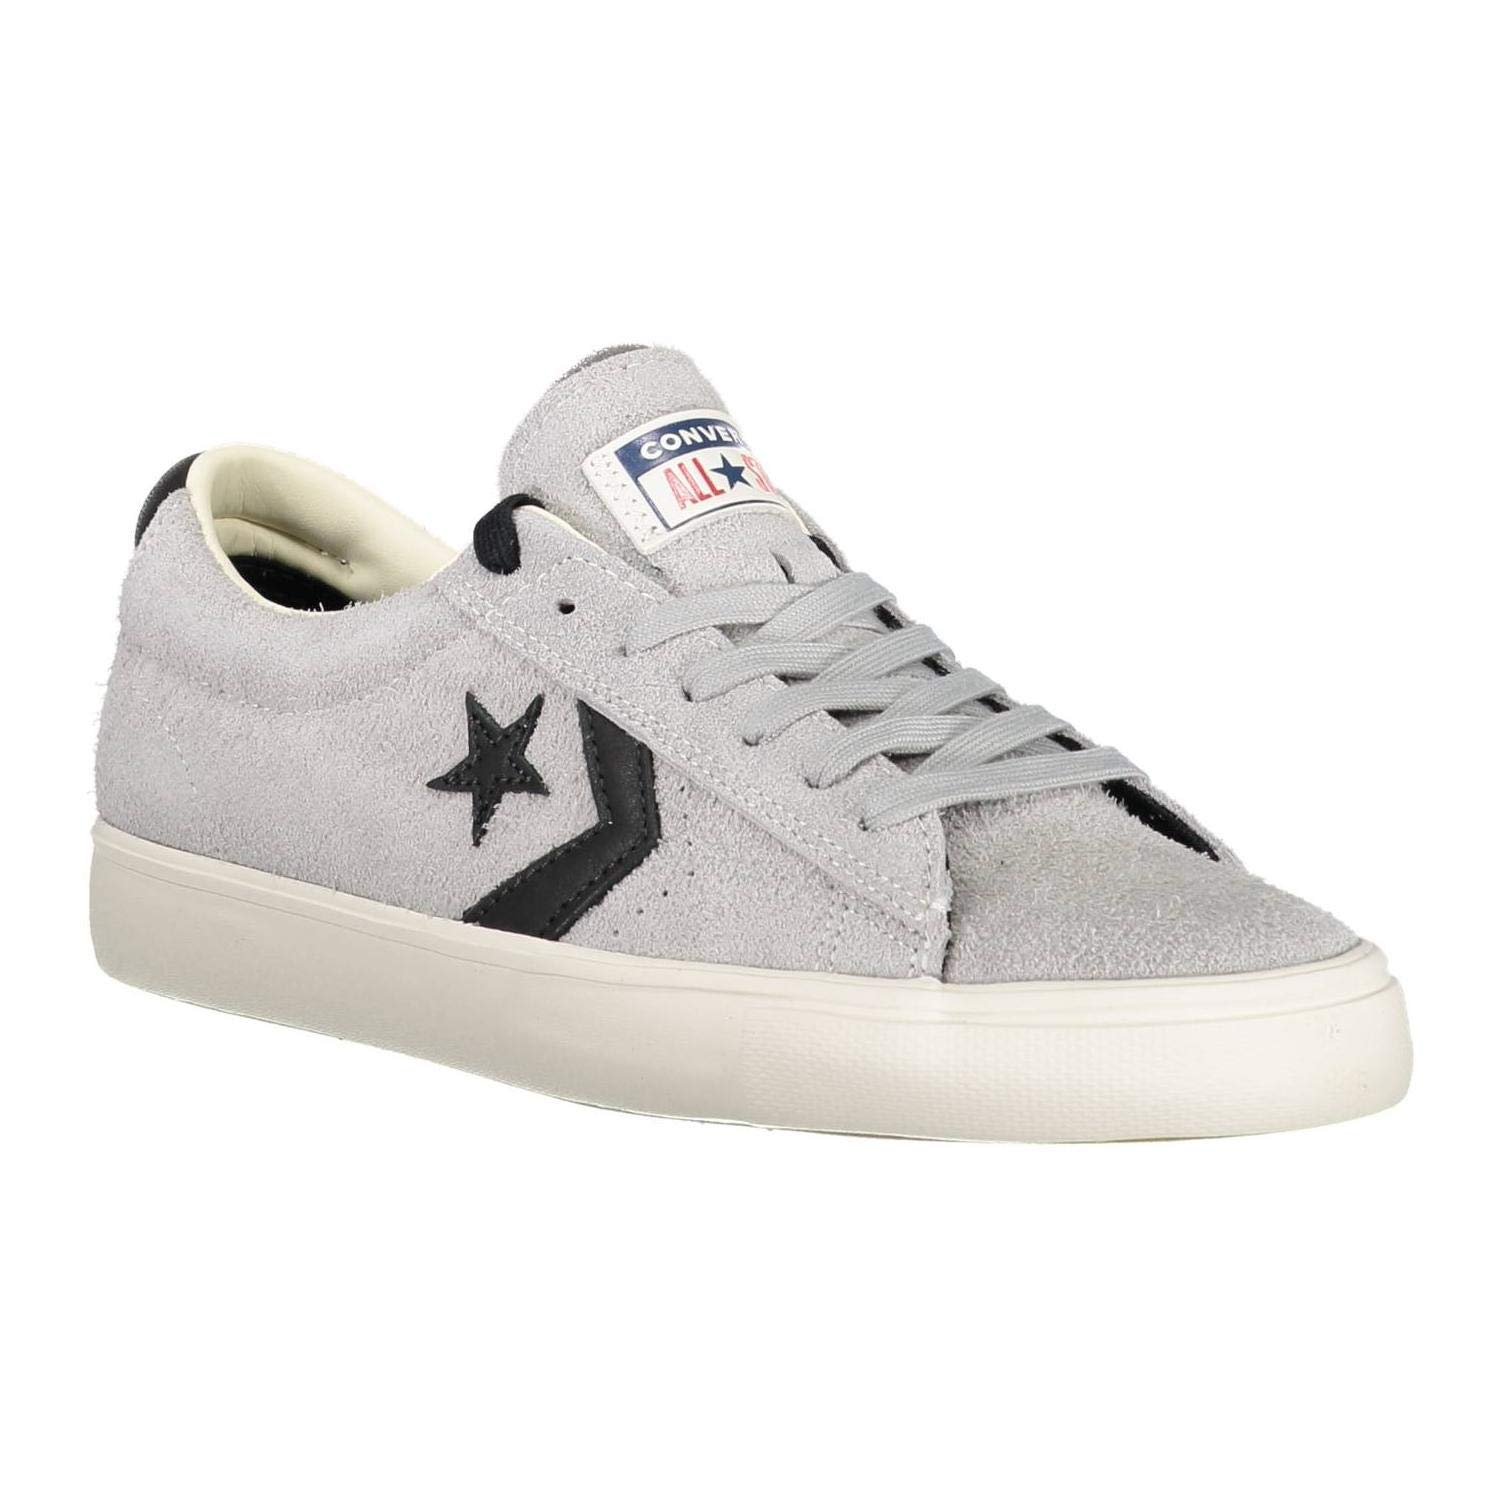 Converse Unisex-Erwachsene Lifestyle Pro Leather Leather Leather Vulc OX Turnschuhe 268b00